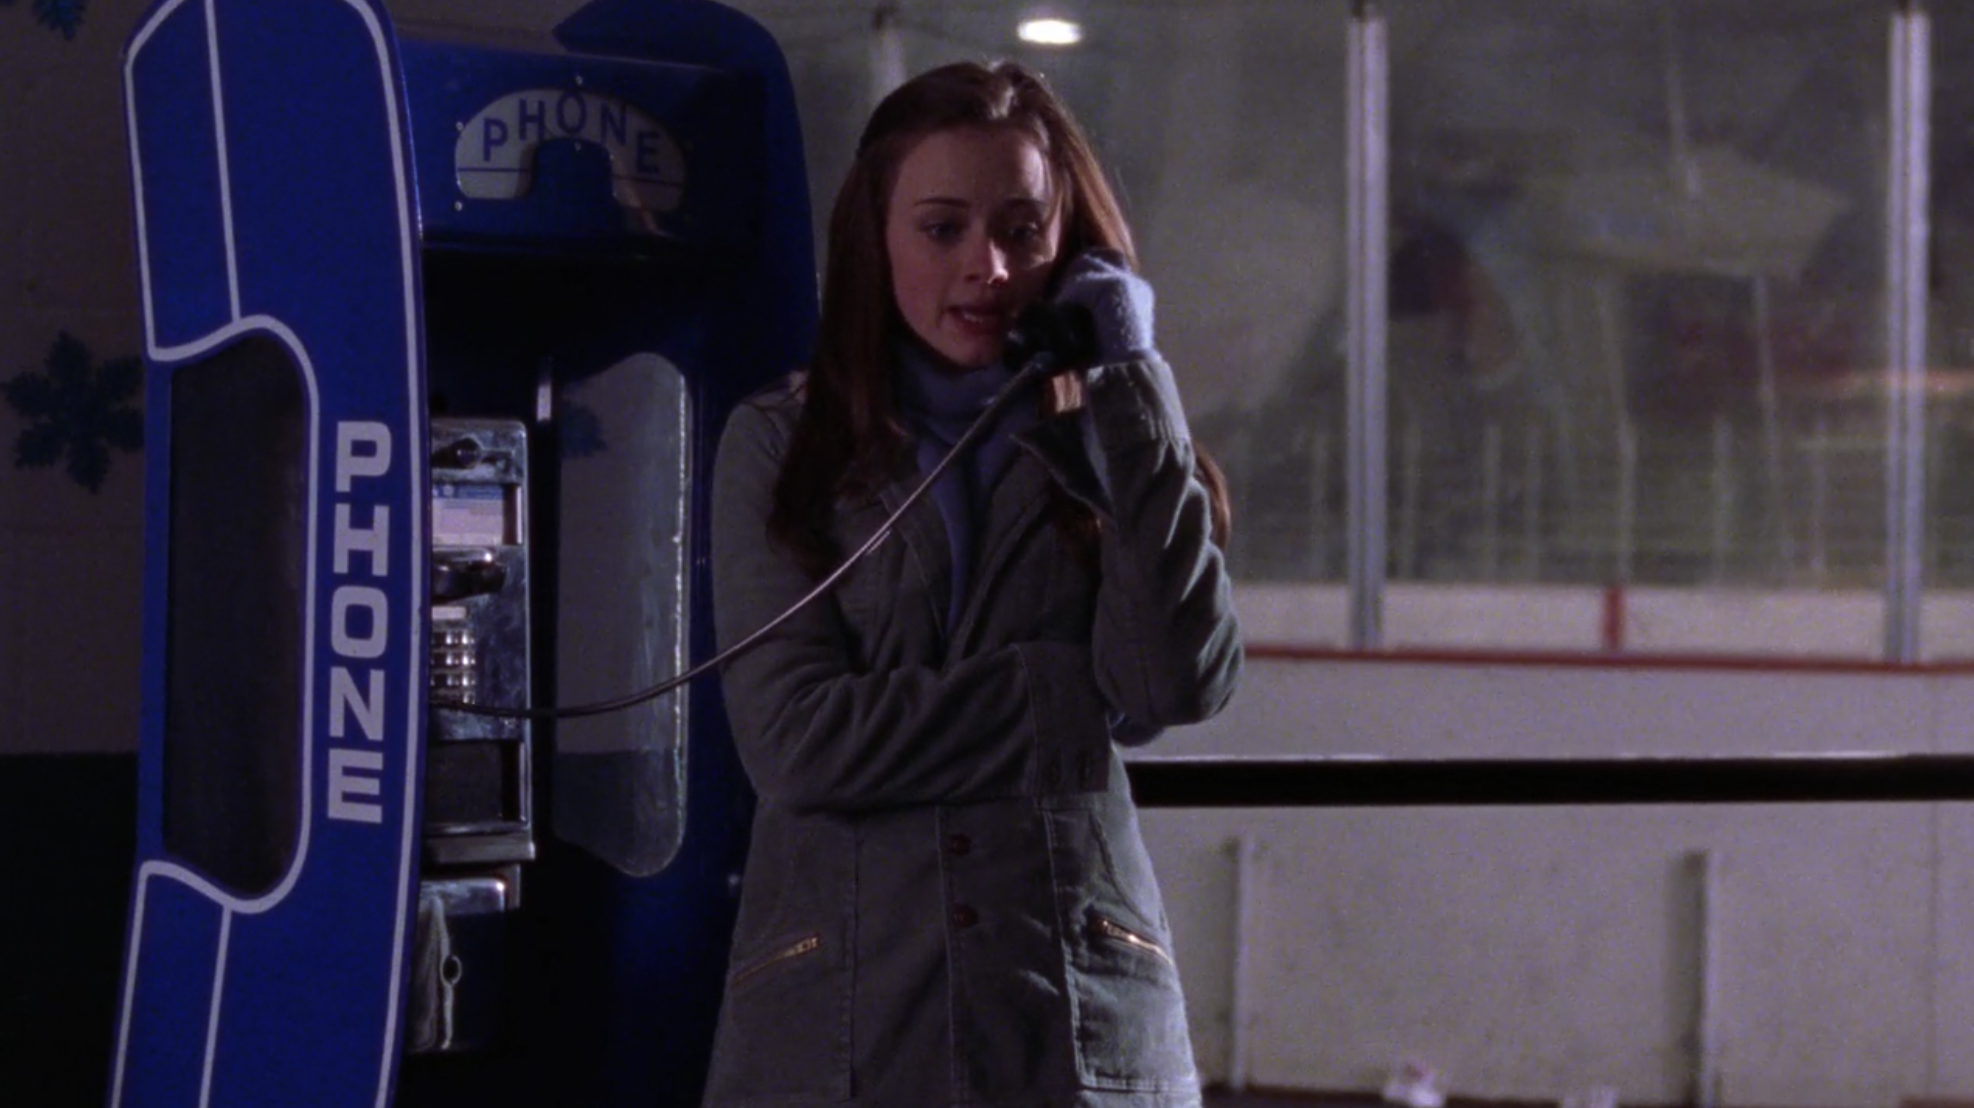 Rory-Pay-Phone-Face-Off-Gilmore-Girls